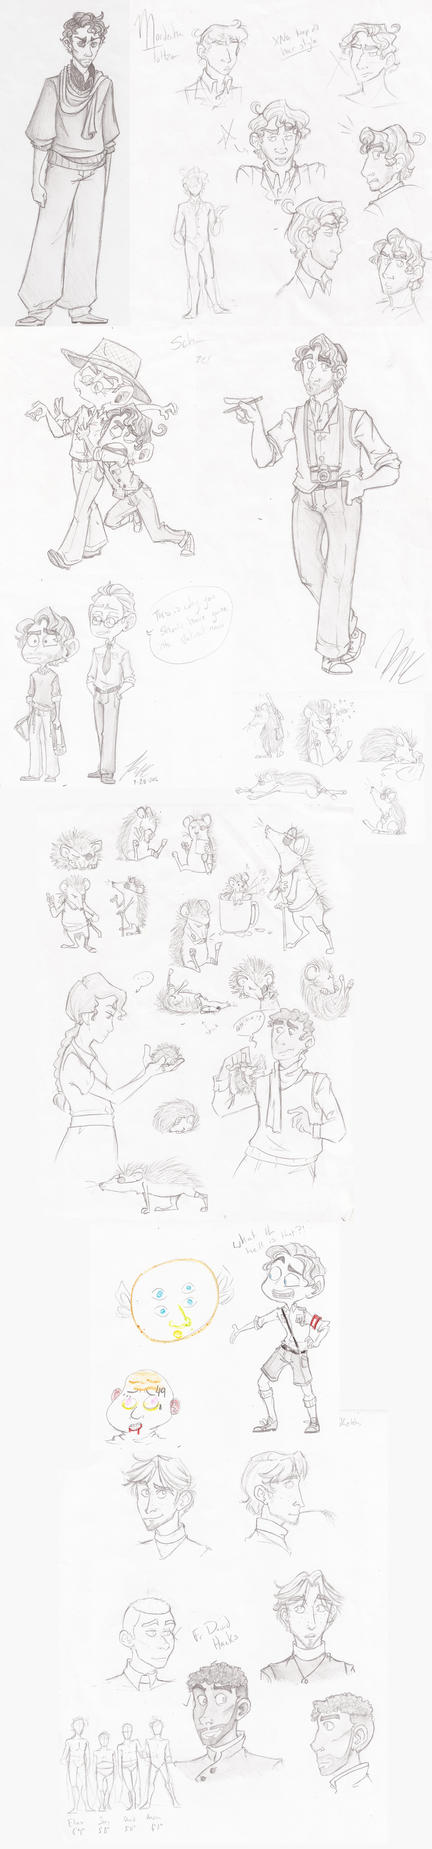 A Pile of Sketches by HugaDuck